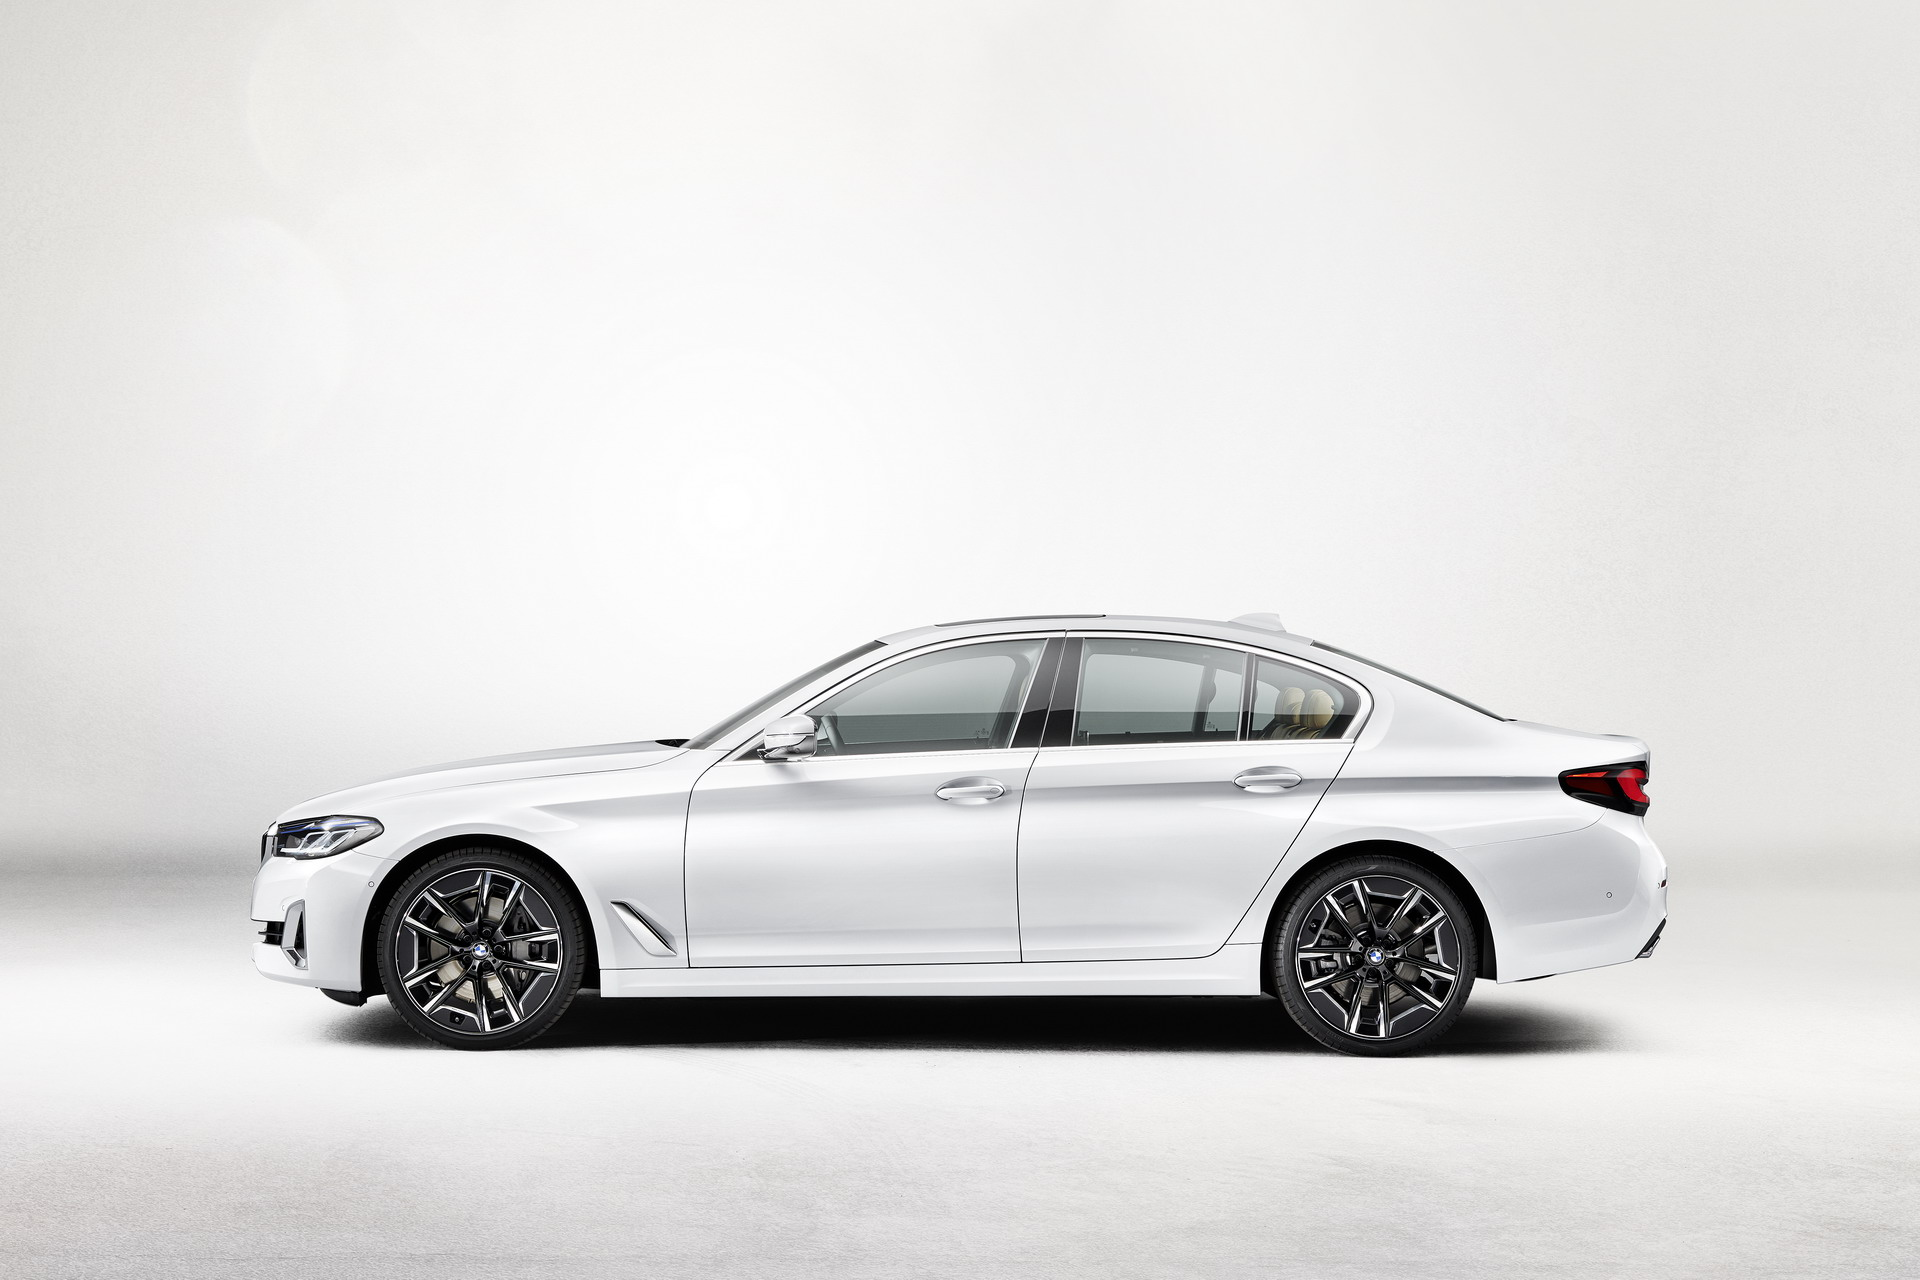 BMW 5 Series Facelift: New Individual features, Air Performance Wheels